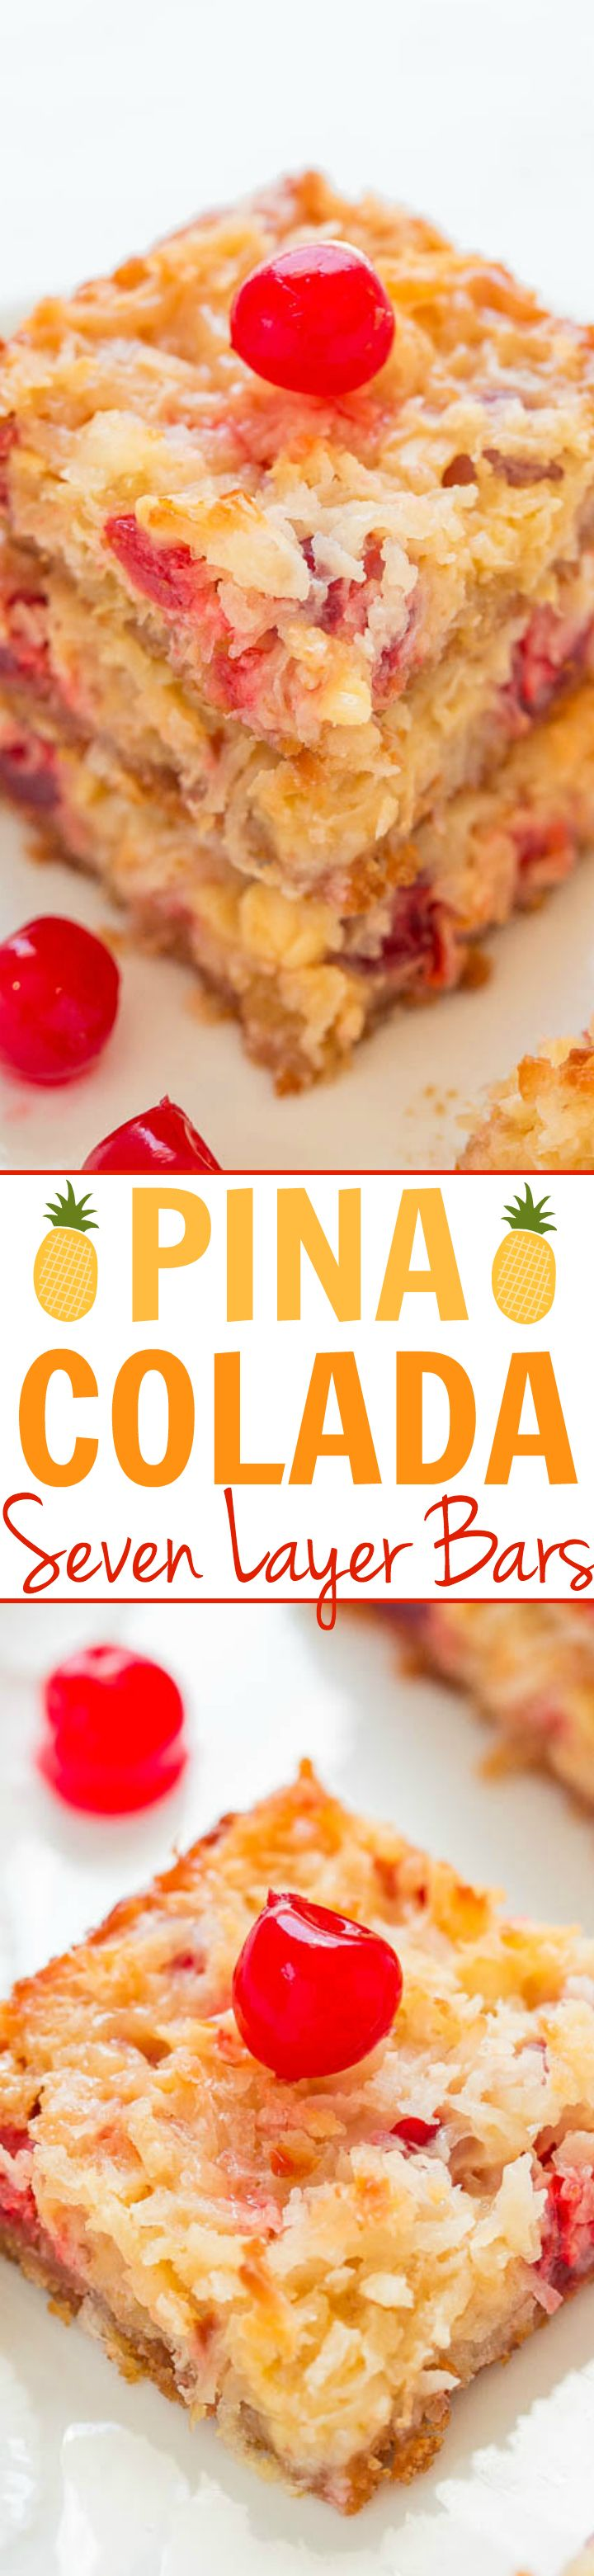 I combined my love of pina coladas and seven layer bars into a fast, easy, no-mixer dessert that tastes like the tropics. The bars are like eating a pina colada rather than drinking one. Like any good hello dolly, magic, or seven layer bar (the names are different but the concept is the same) this one starts …